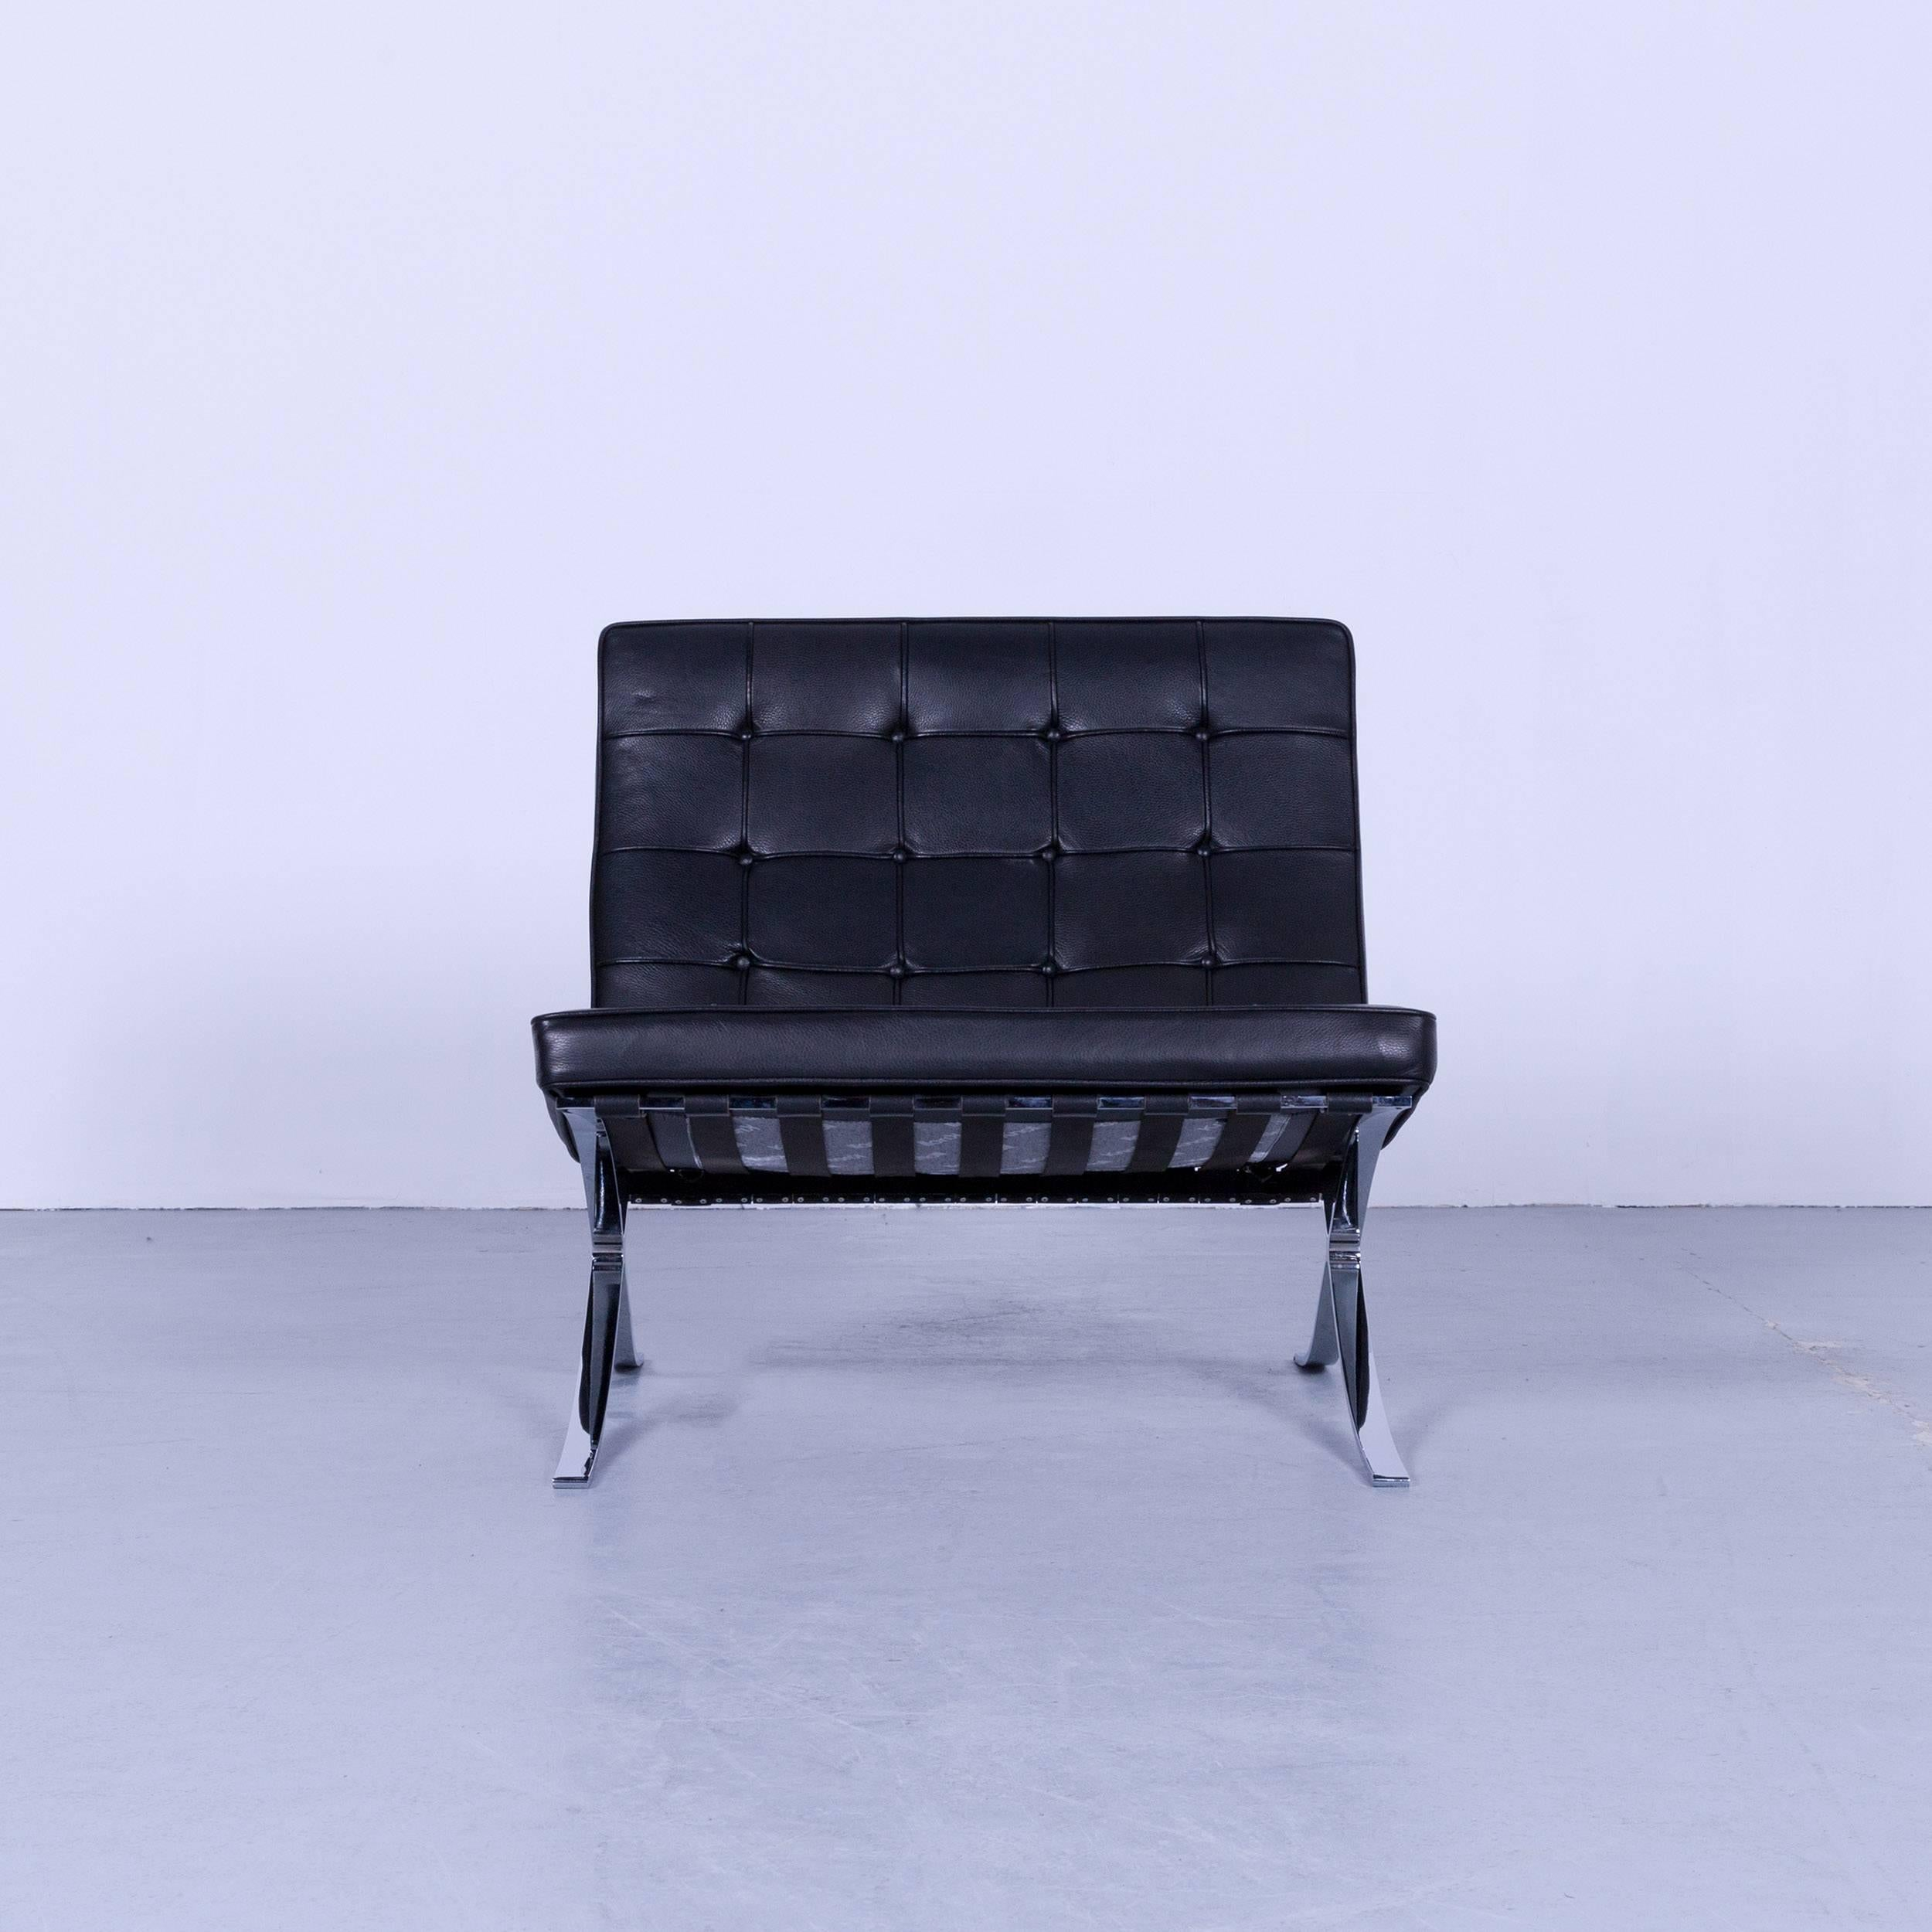 Mies Van Der Rohe Sessel Knoll International Barcelona Chair Black Leather Ludwig Mies Van Der Rohe